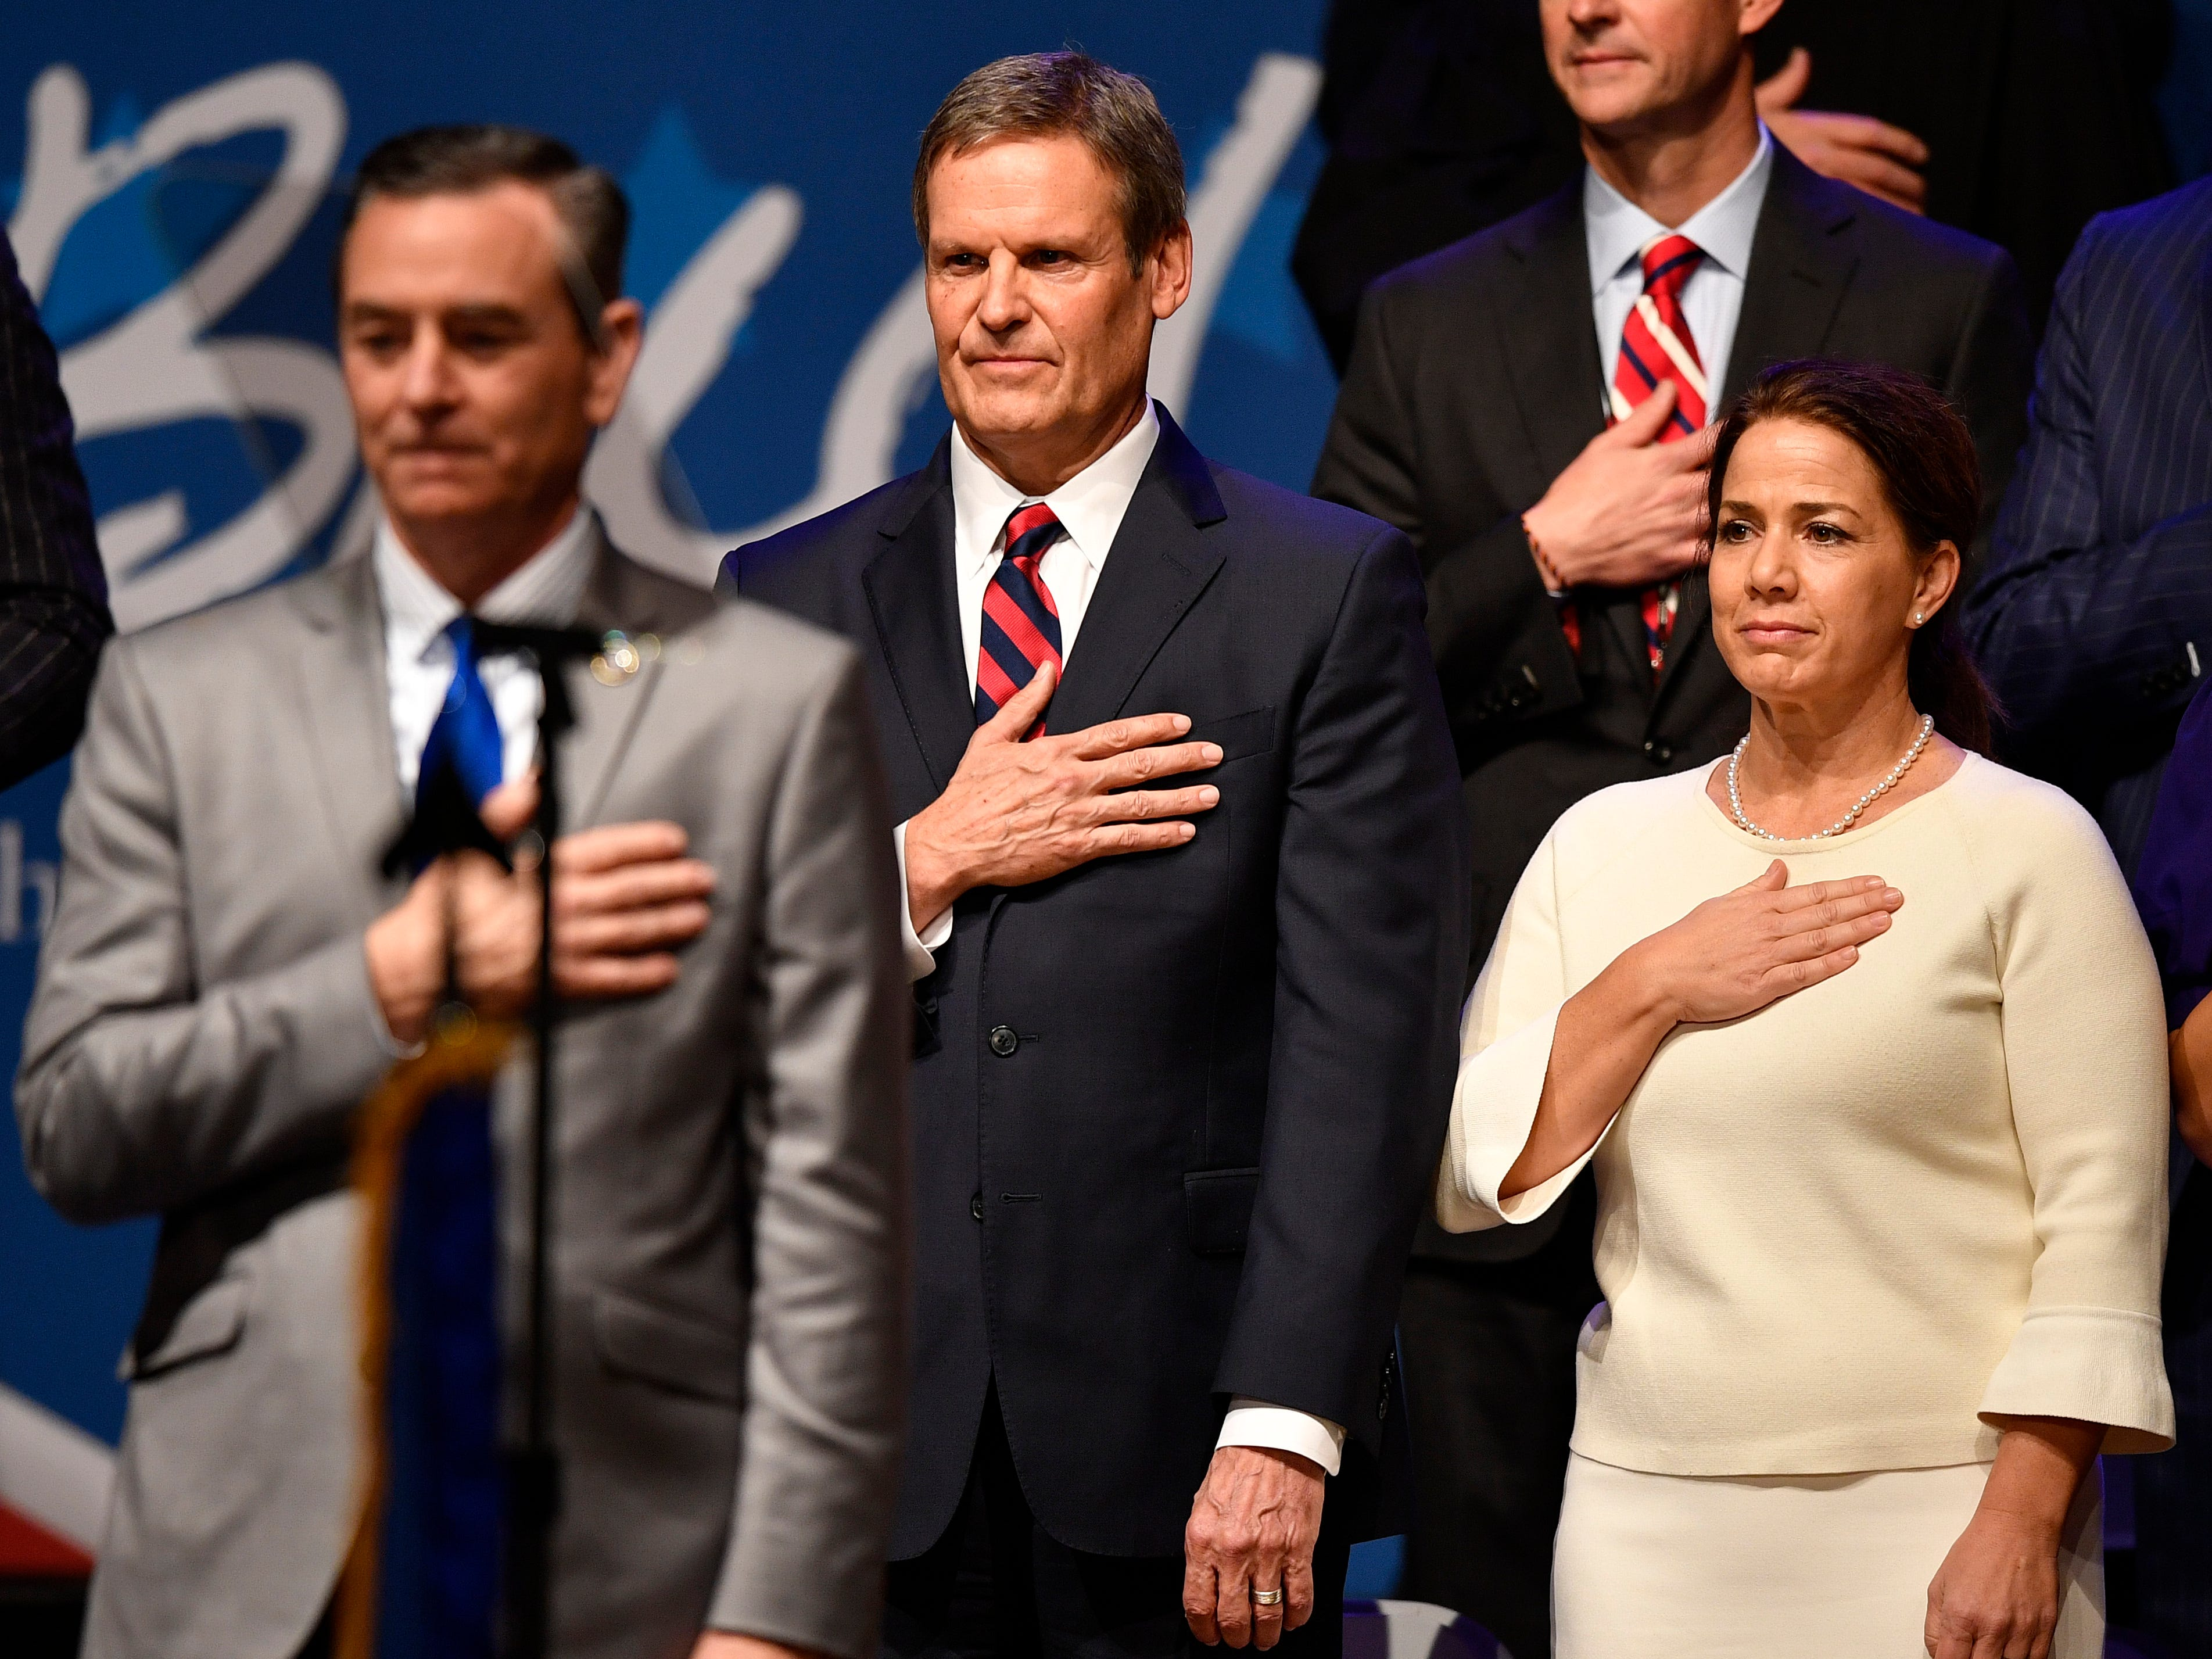 Bill Lee and wife Maria stand during his inauguration as the 50th governor of Tennessee at War Memorial Auditorium in Nashville, Tenn., Saturday, Jan. 19, 2019. Speaker of the House Glen Casada is front left.